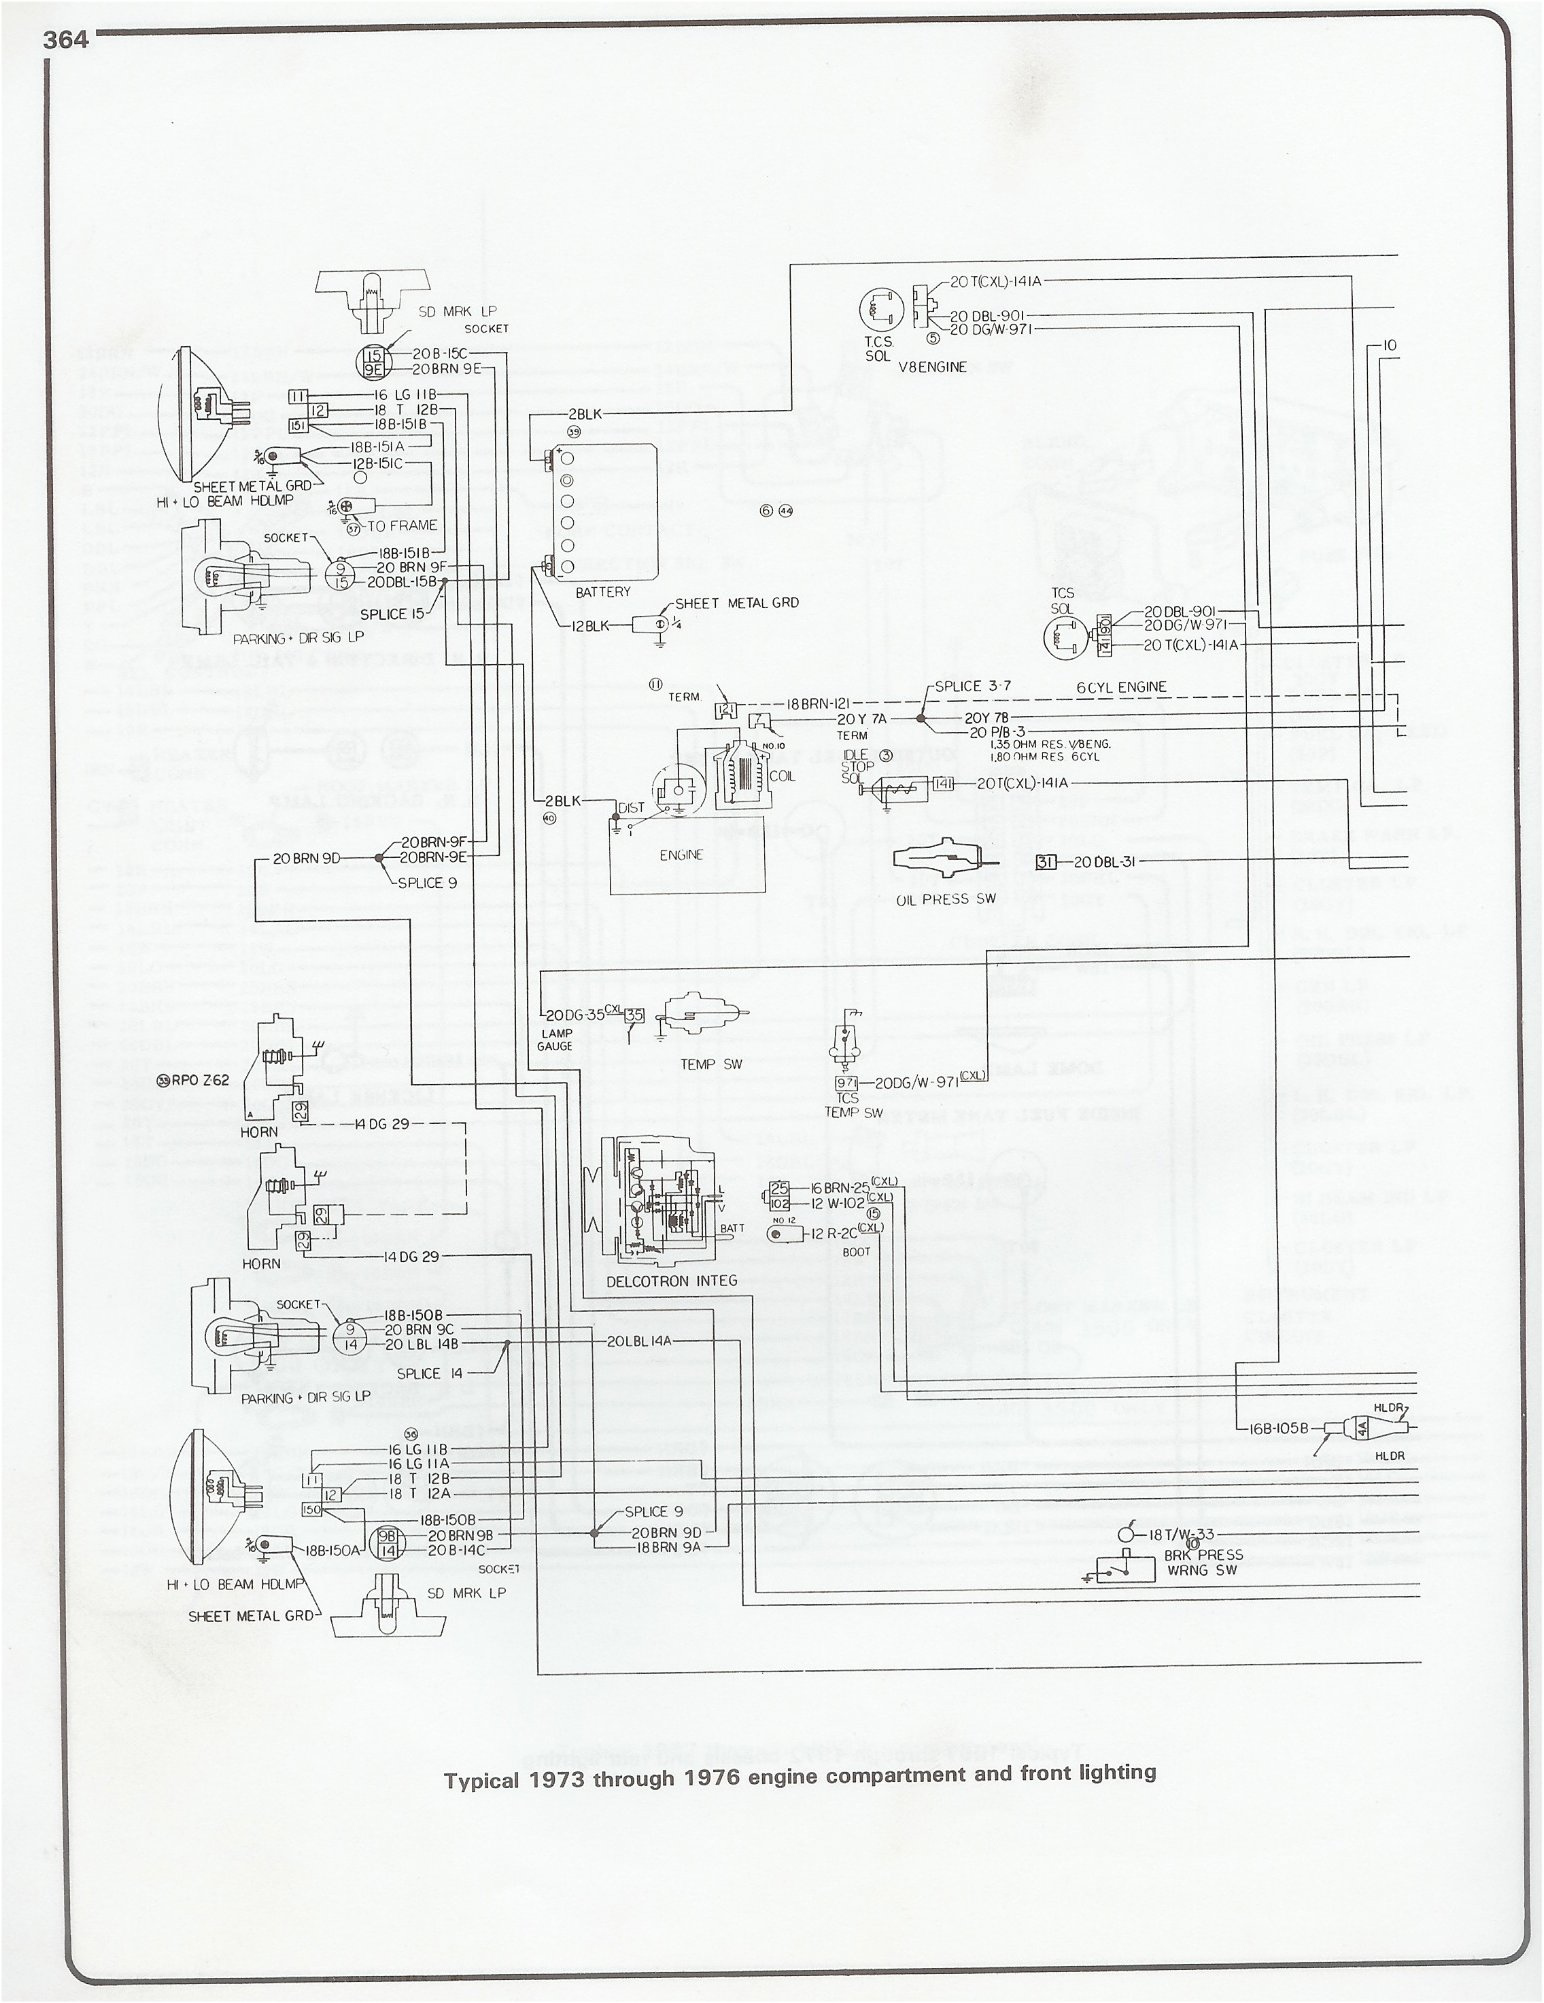 80 chevy c10 wiring diagram